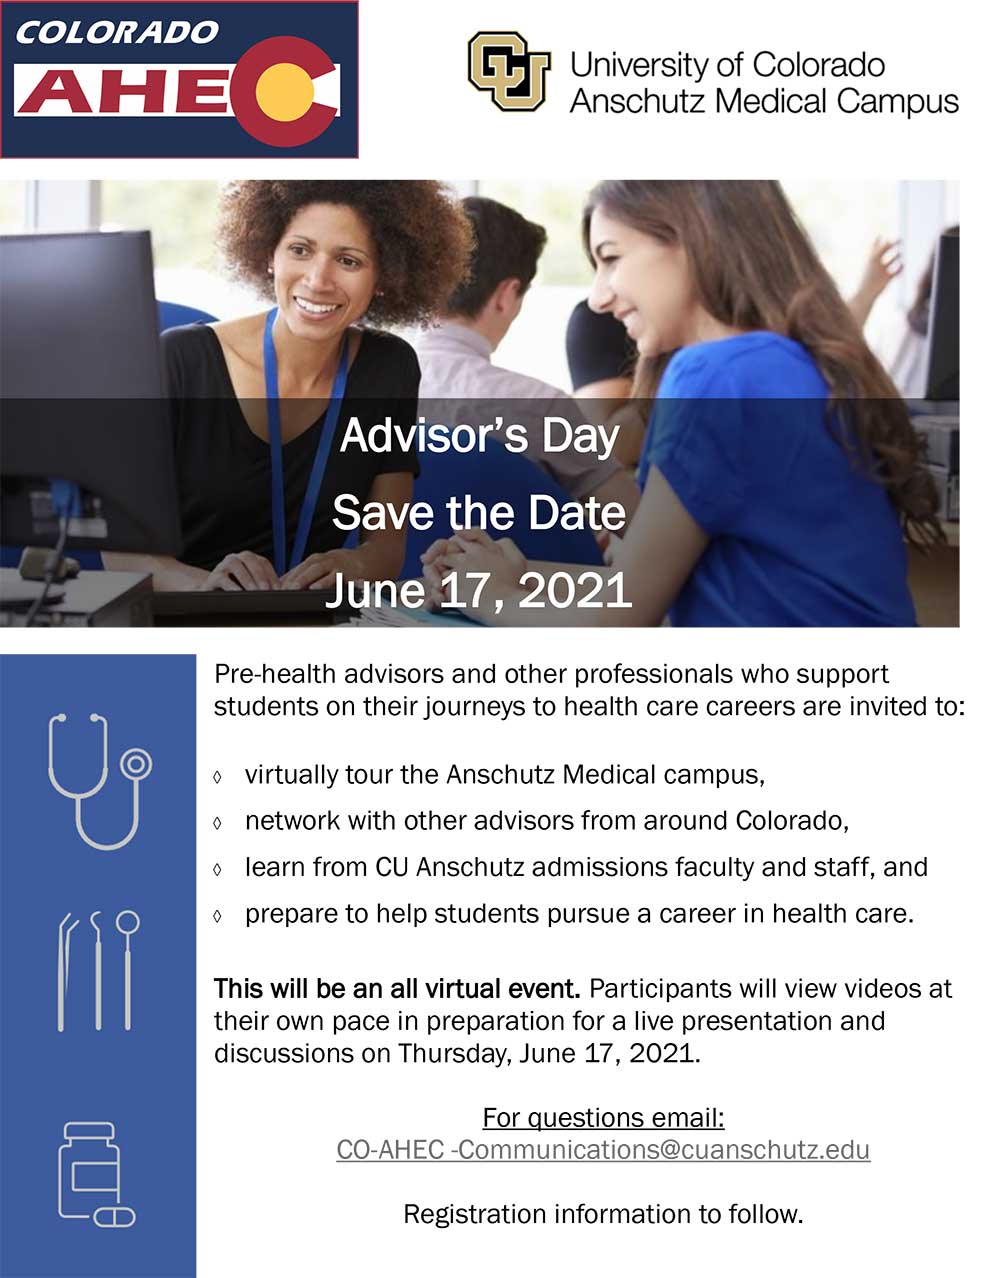 Advisor's-Day-Save-the-Date-Flyer-2021